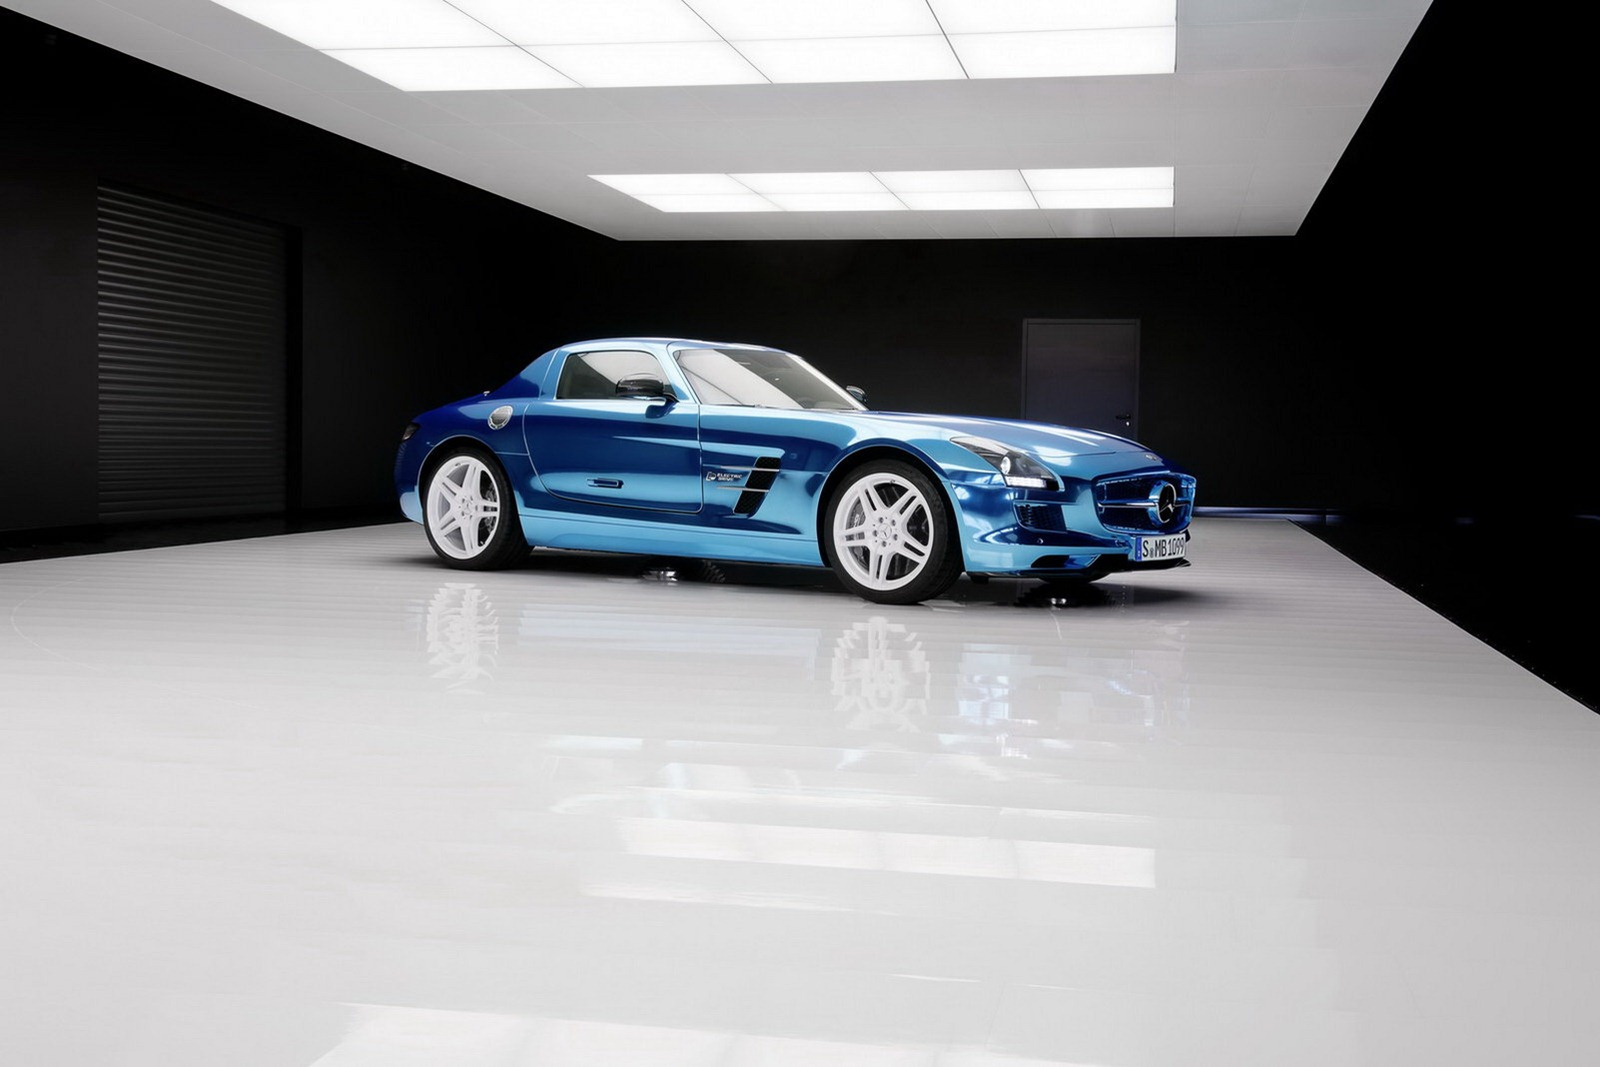 Mercedes sls amg electric drive in paris auto show for Mercedes benz sls amg electric drive price